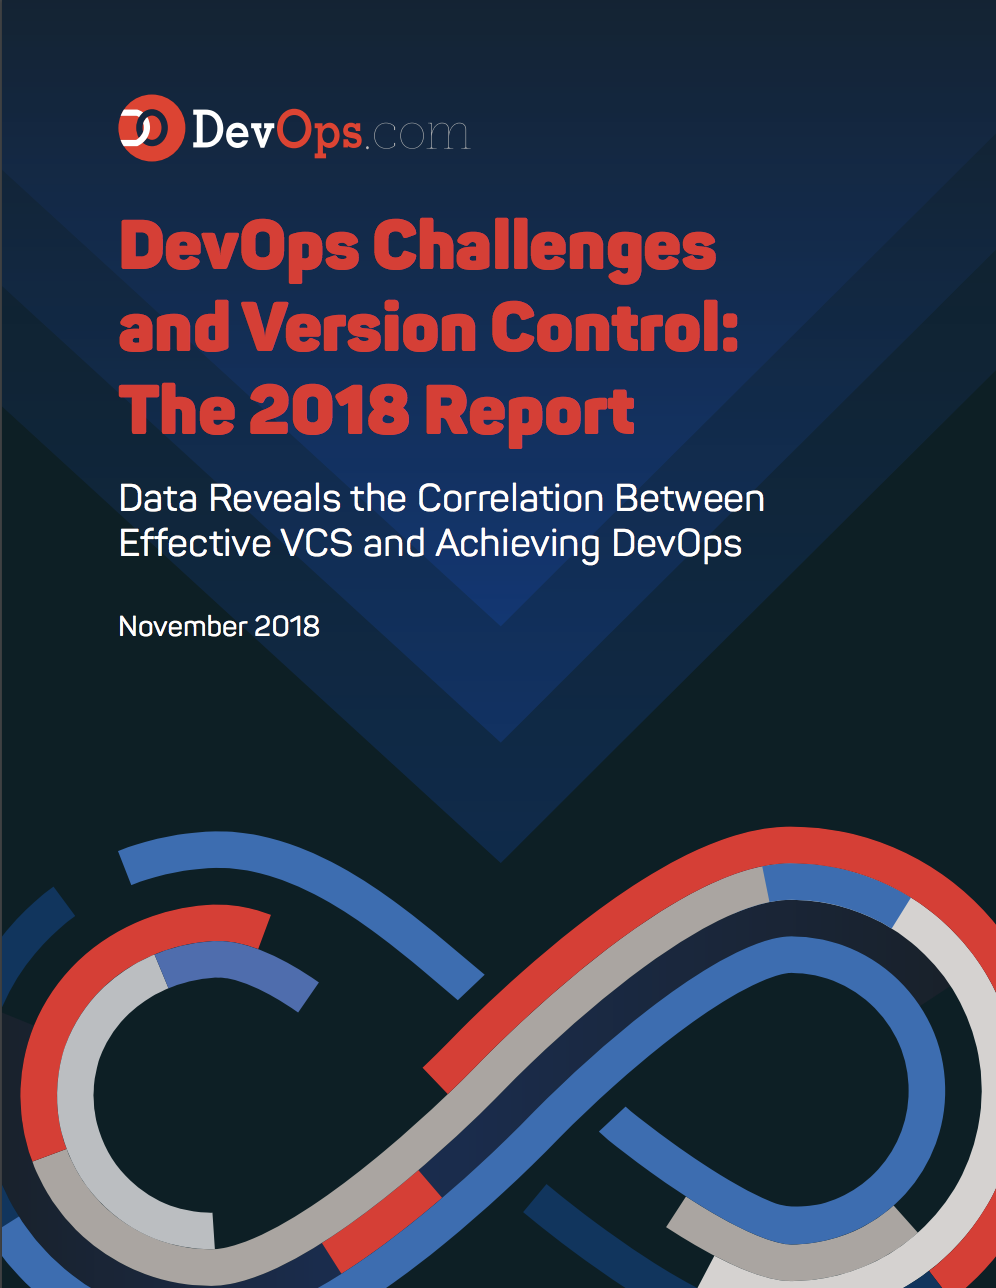 DevOps Challenges and Version Control: The 2018 Report